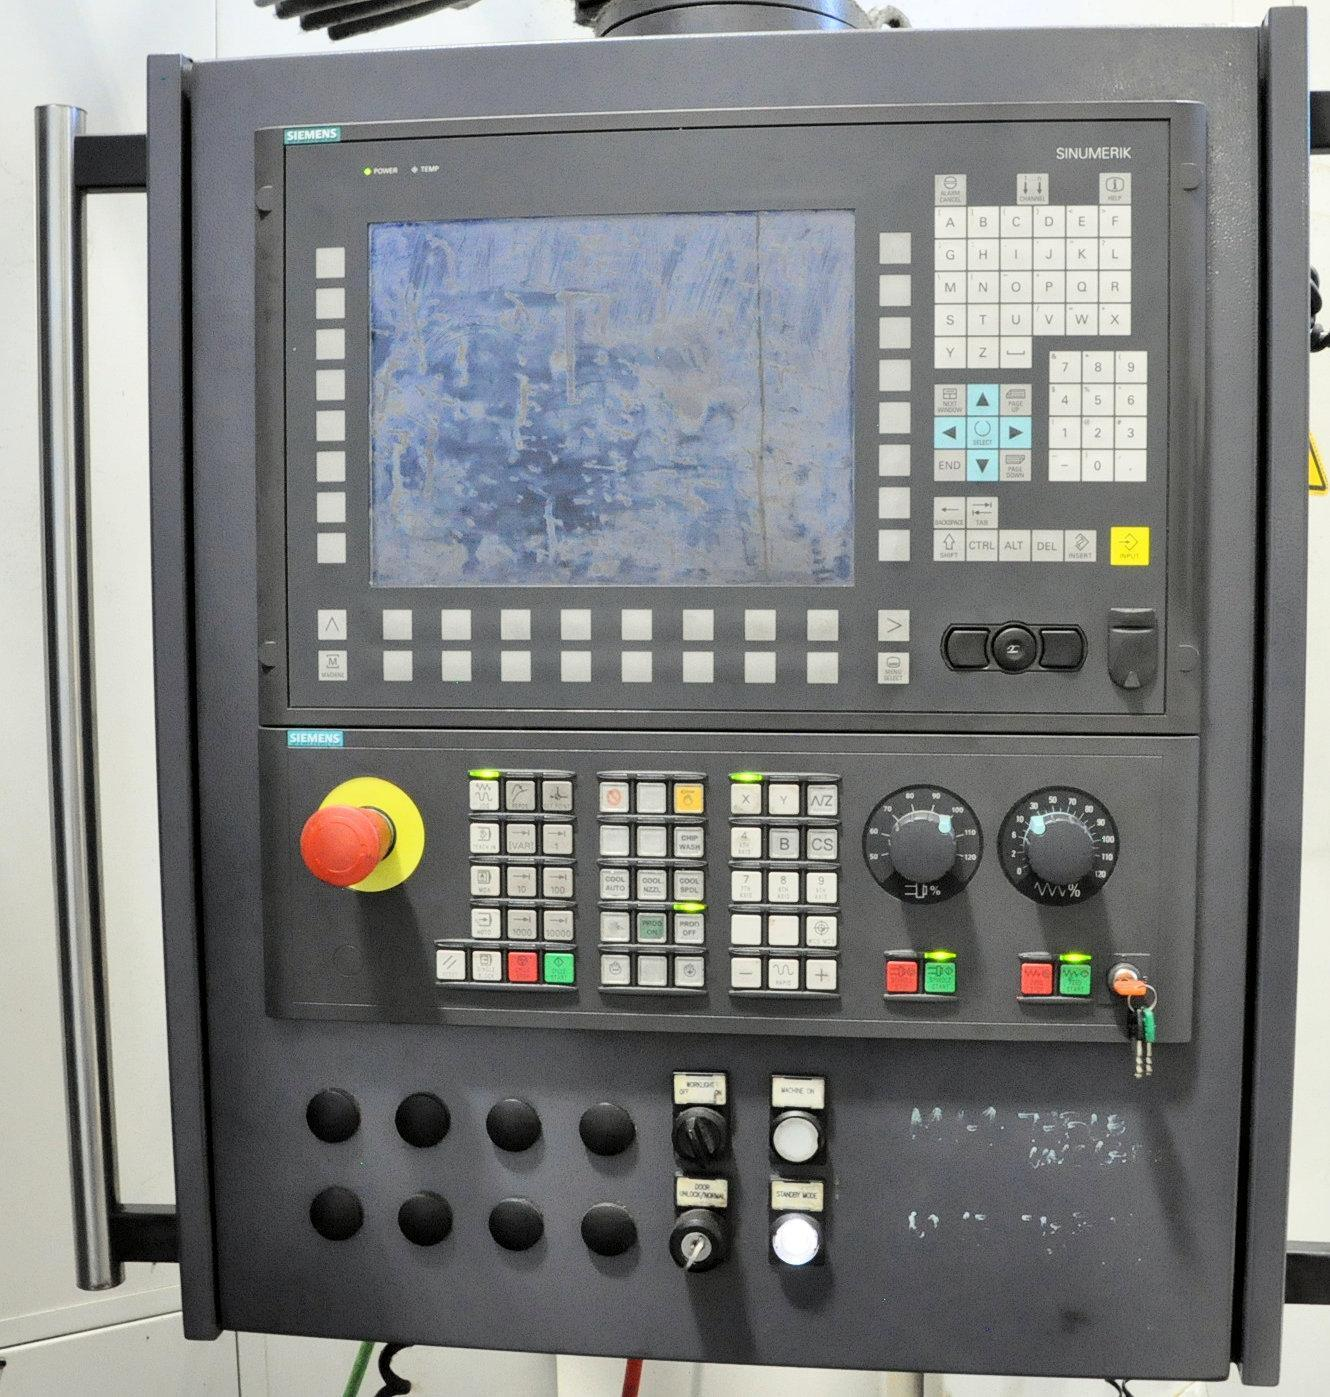 Giddings & Lewis HMC-1250 4-Axis CNC Horizontal Machining Center